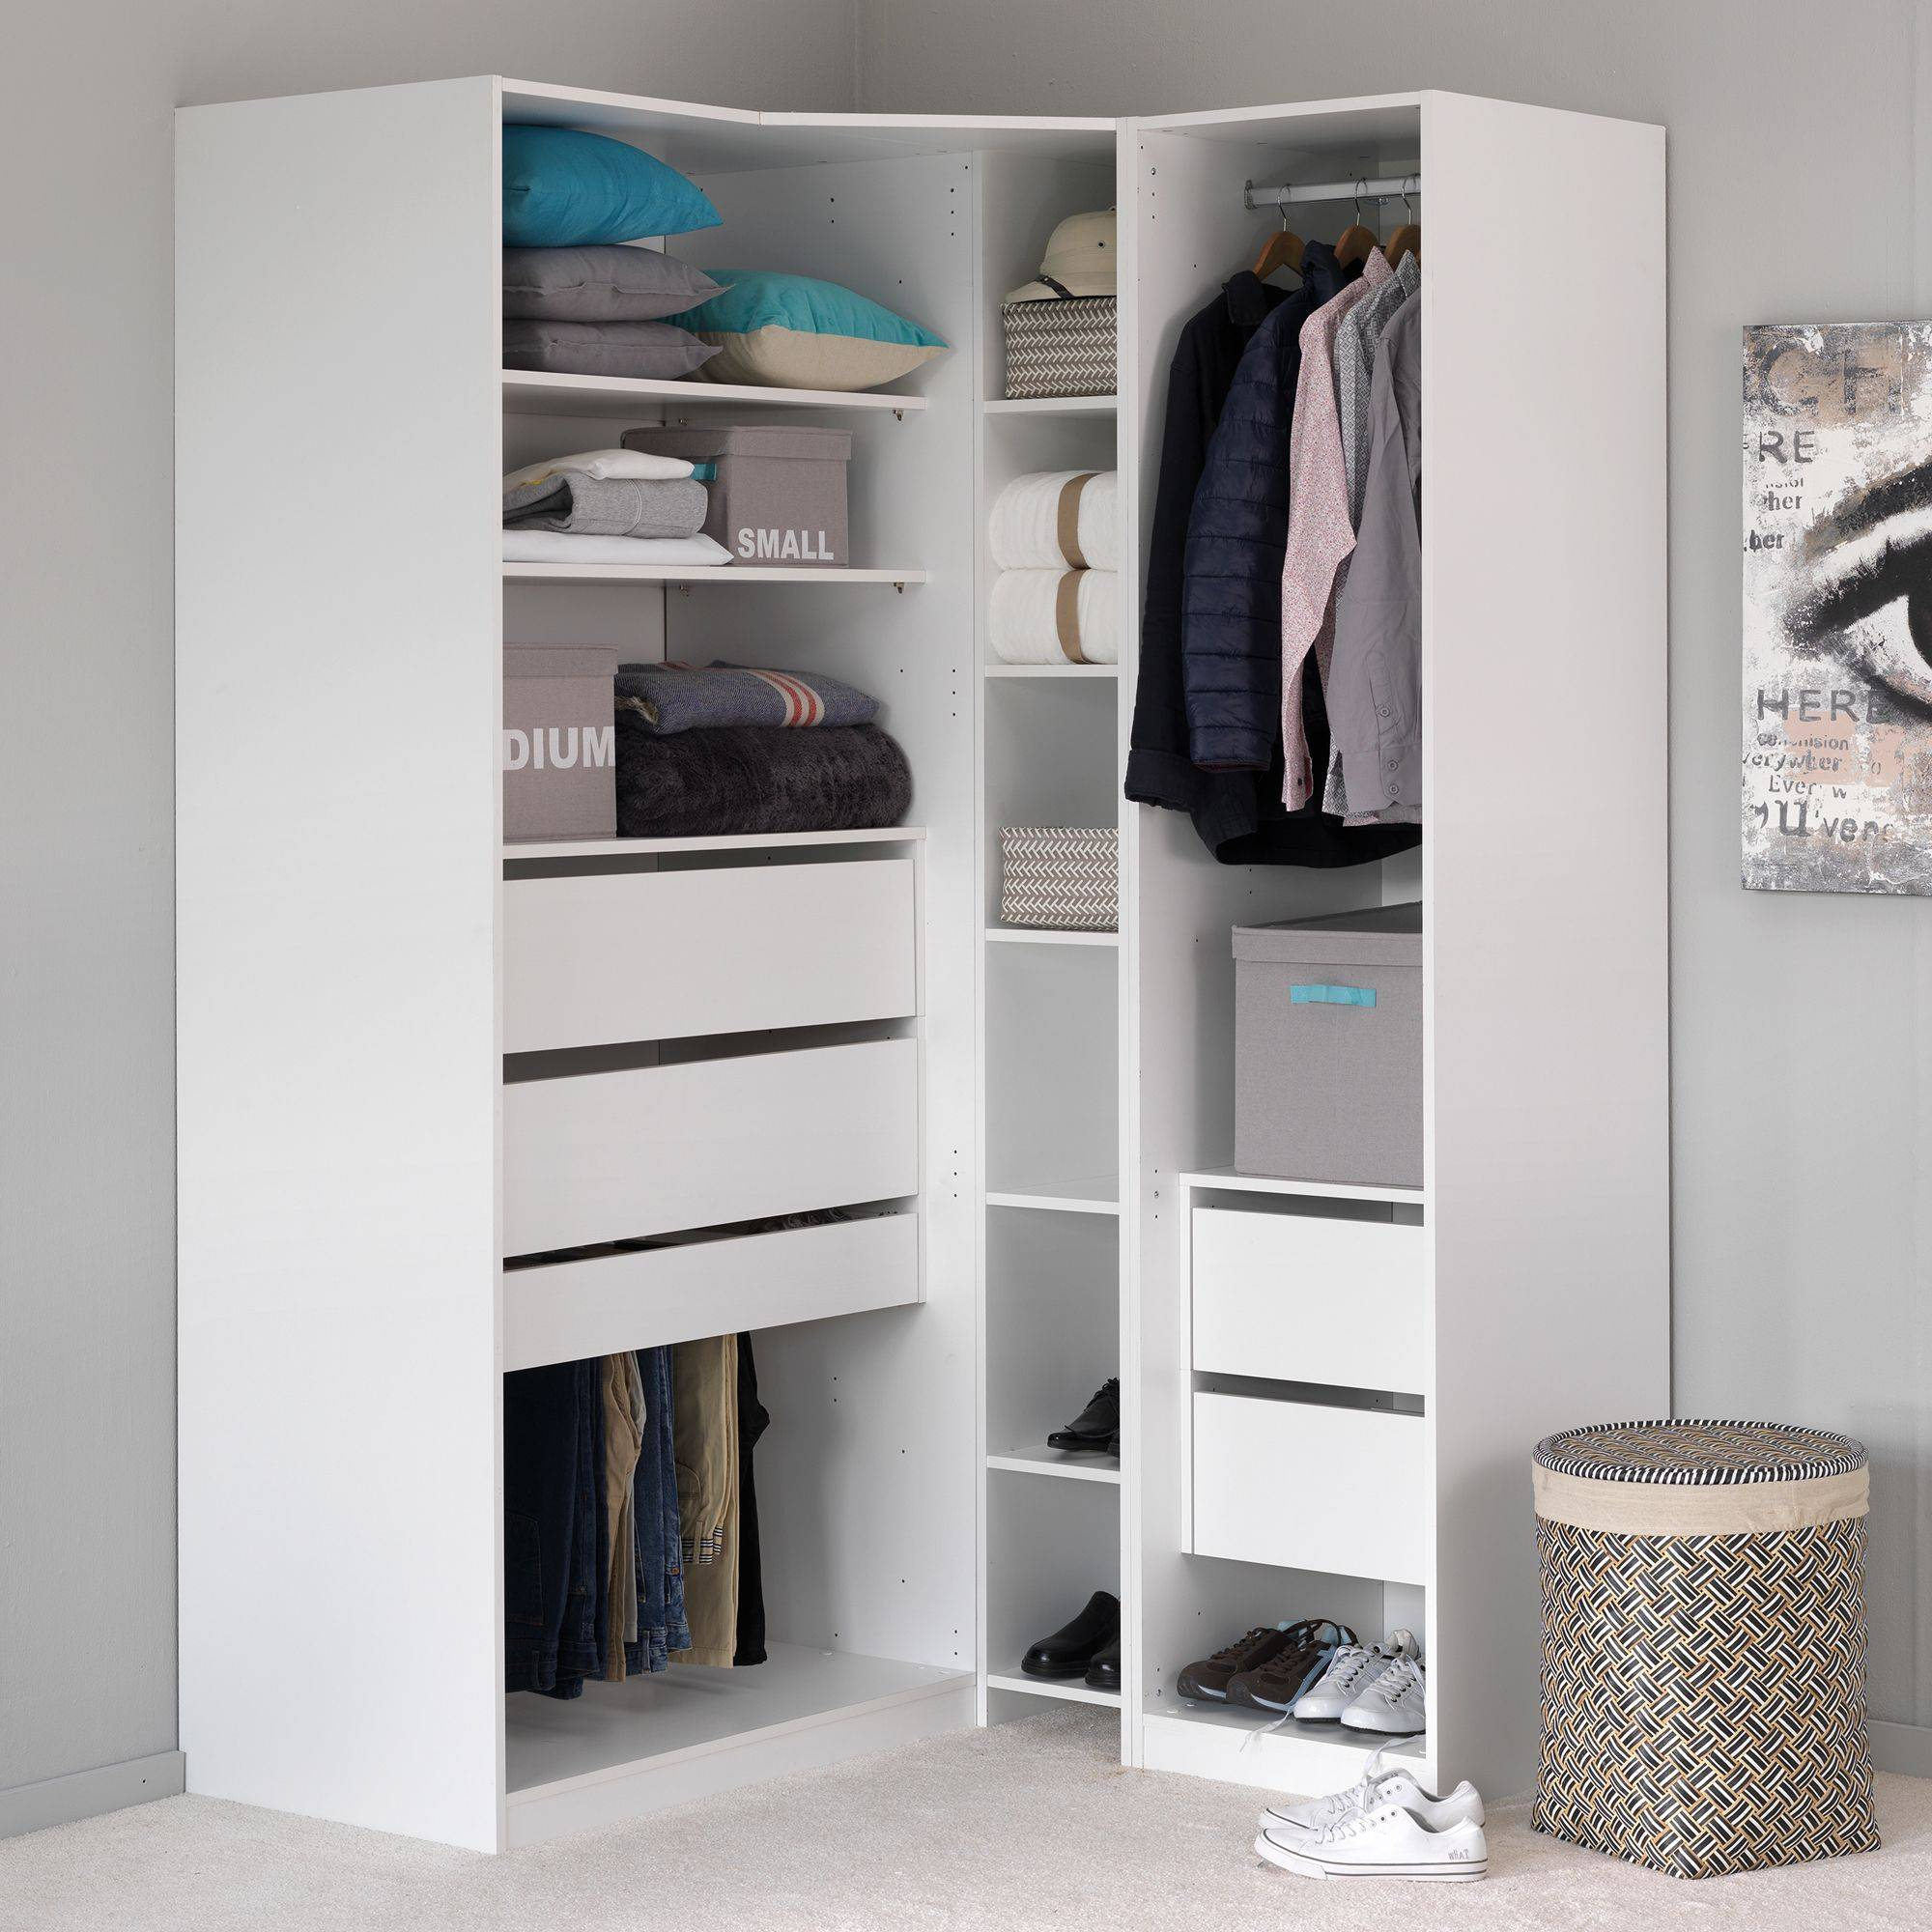 Comment bien am nager un dressing - Amenager un placard en dressing ...